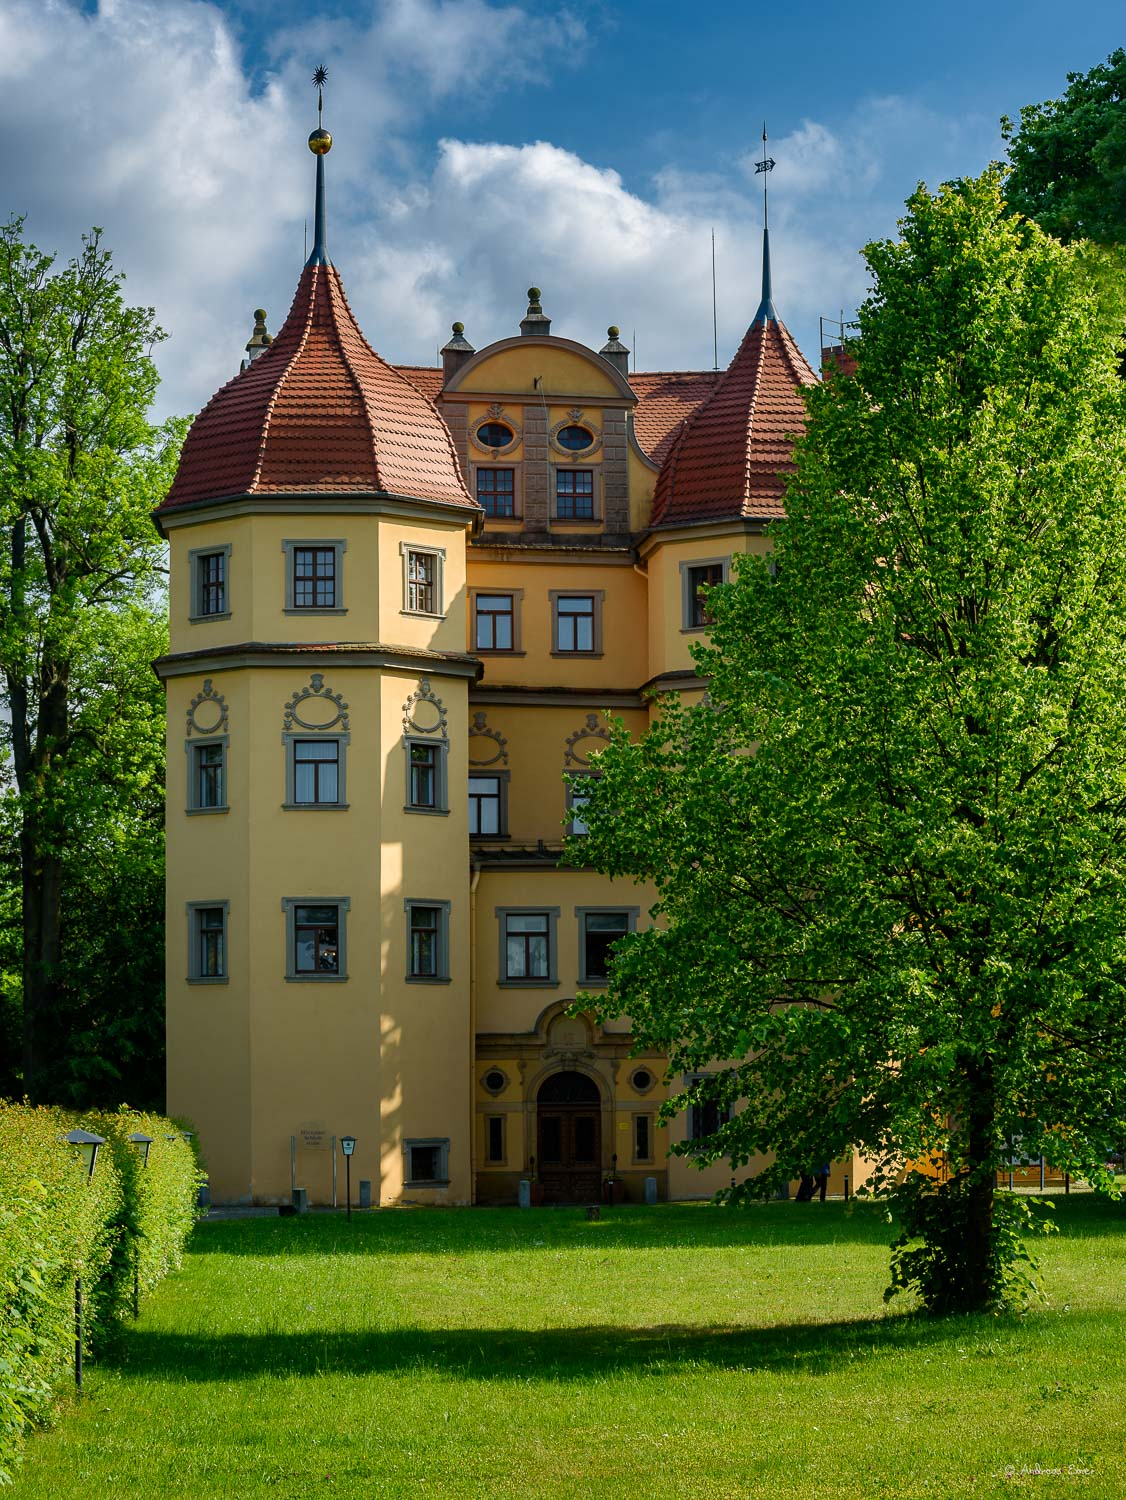 Althörnitz castle hotel, Saxony, Germany